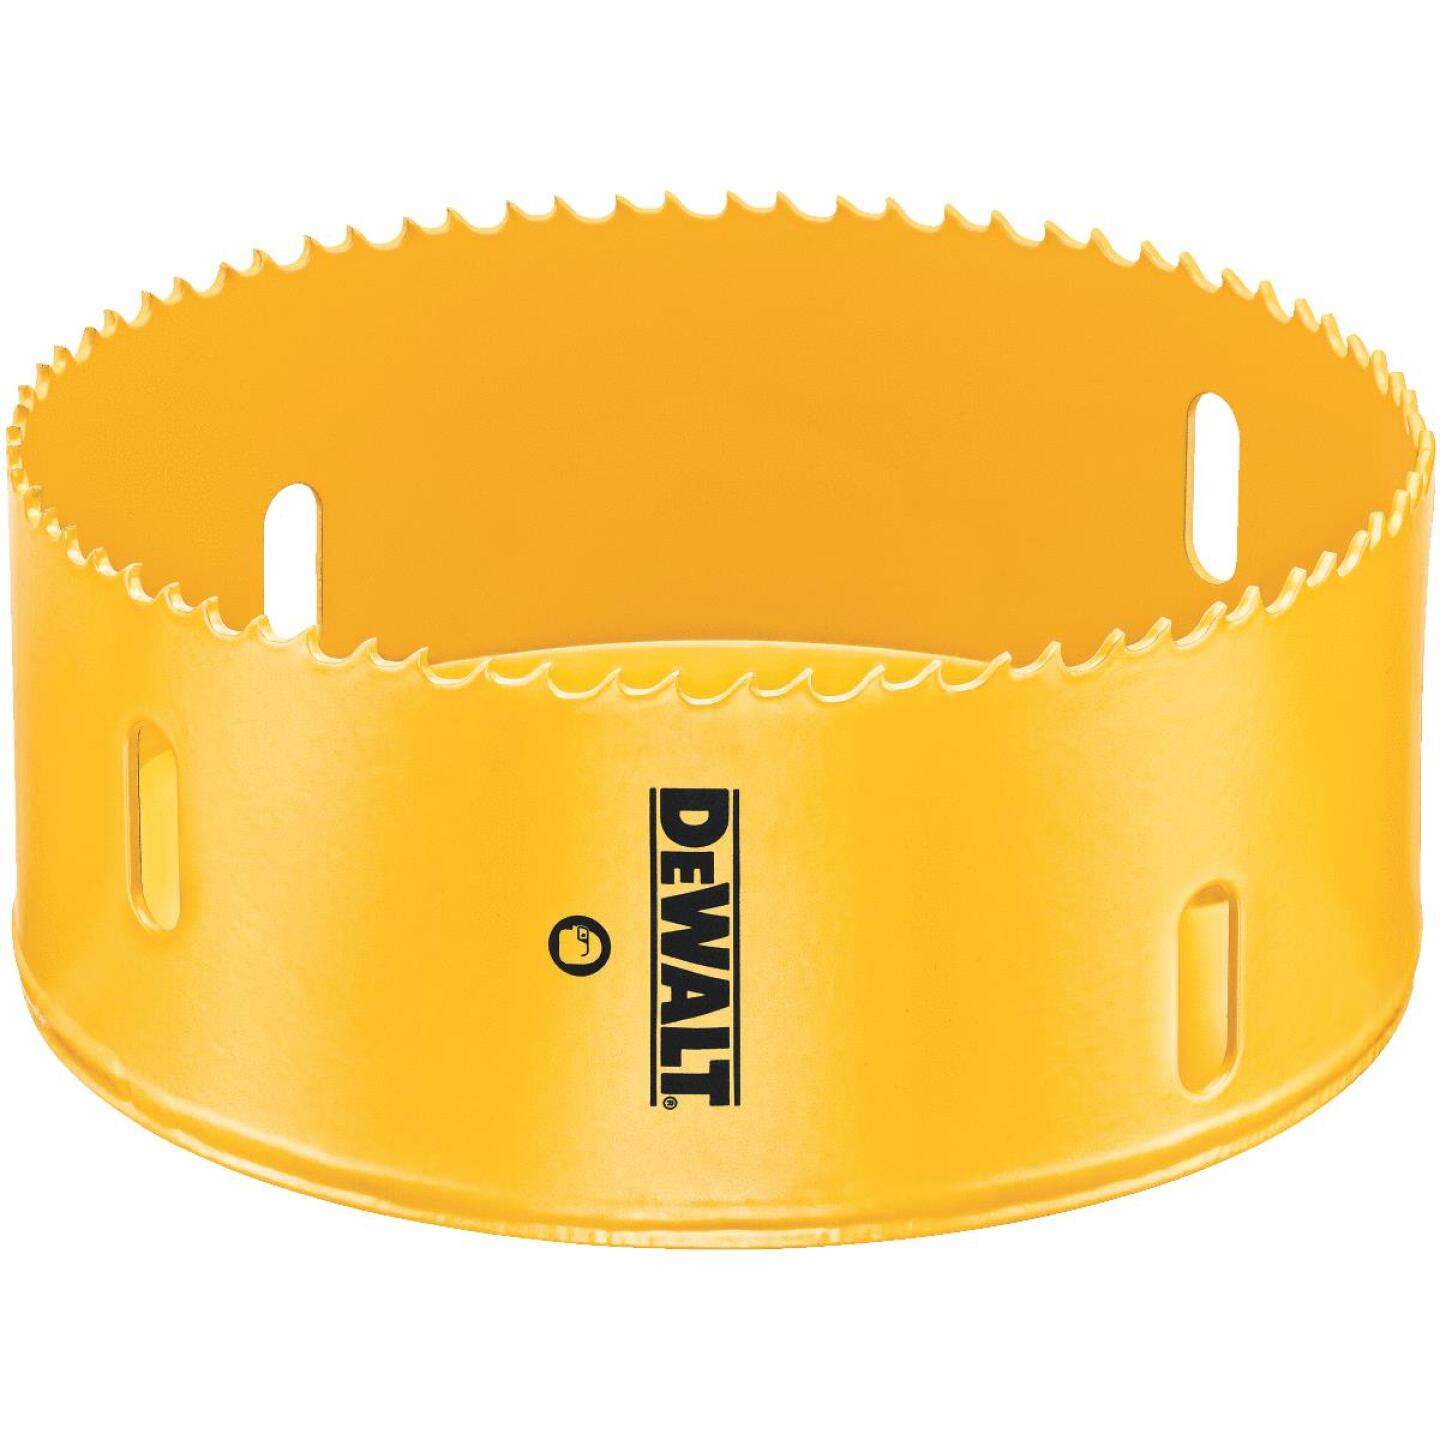 DeWalt 4-1/4 In. Bi-Metal Hole Saw Image 1